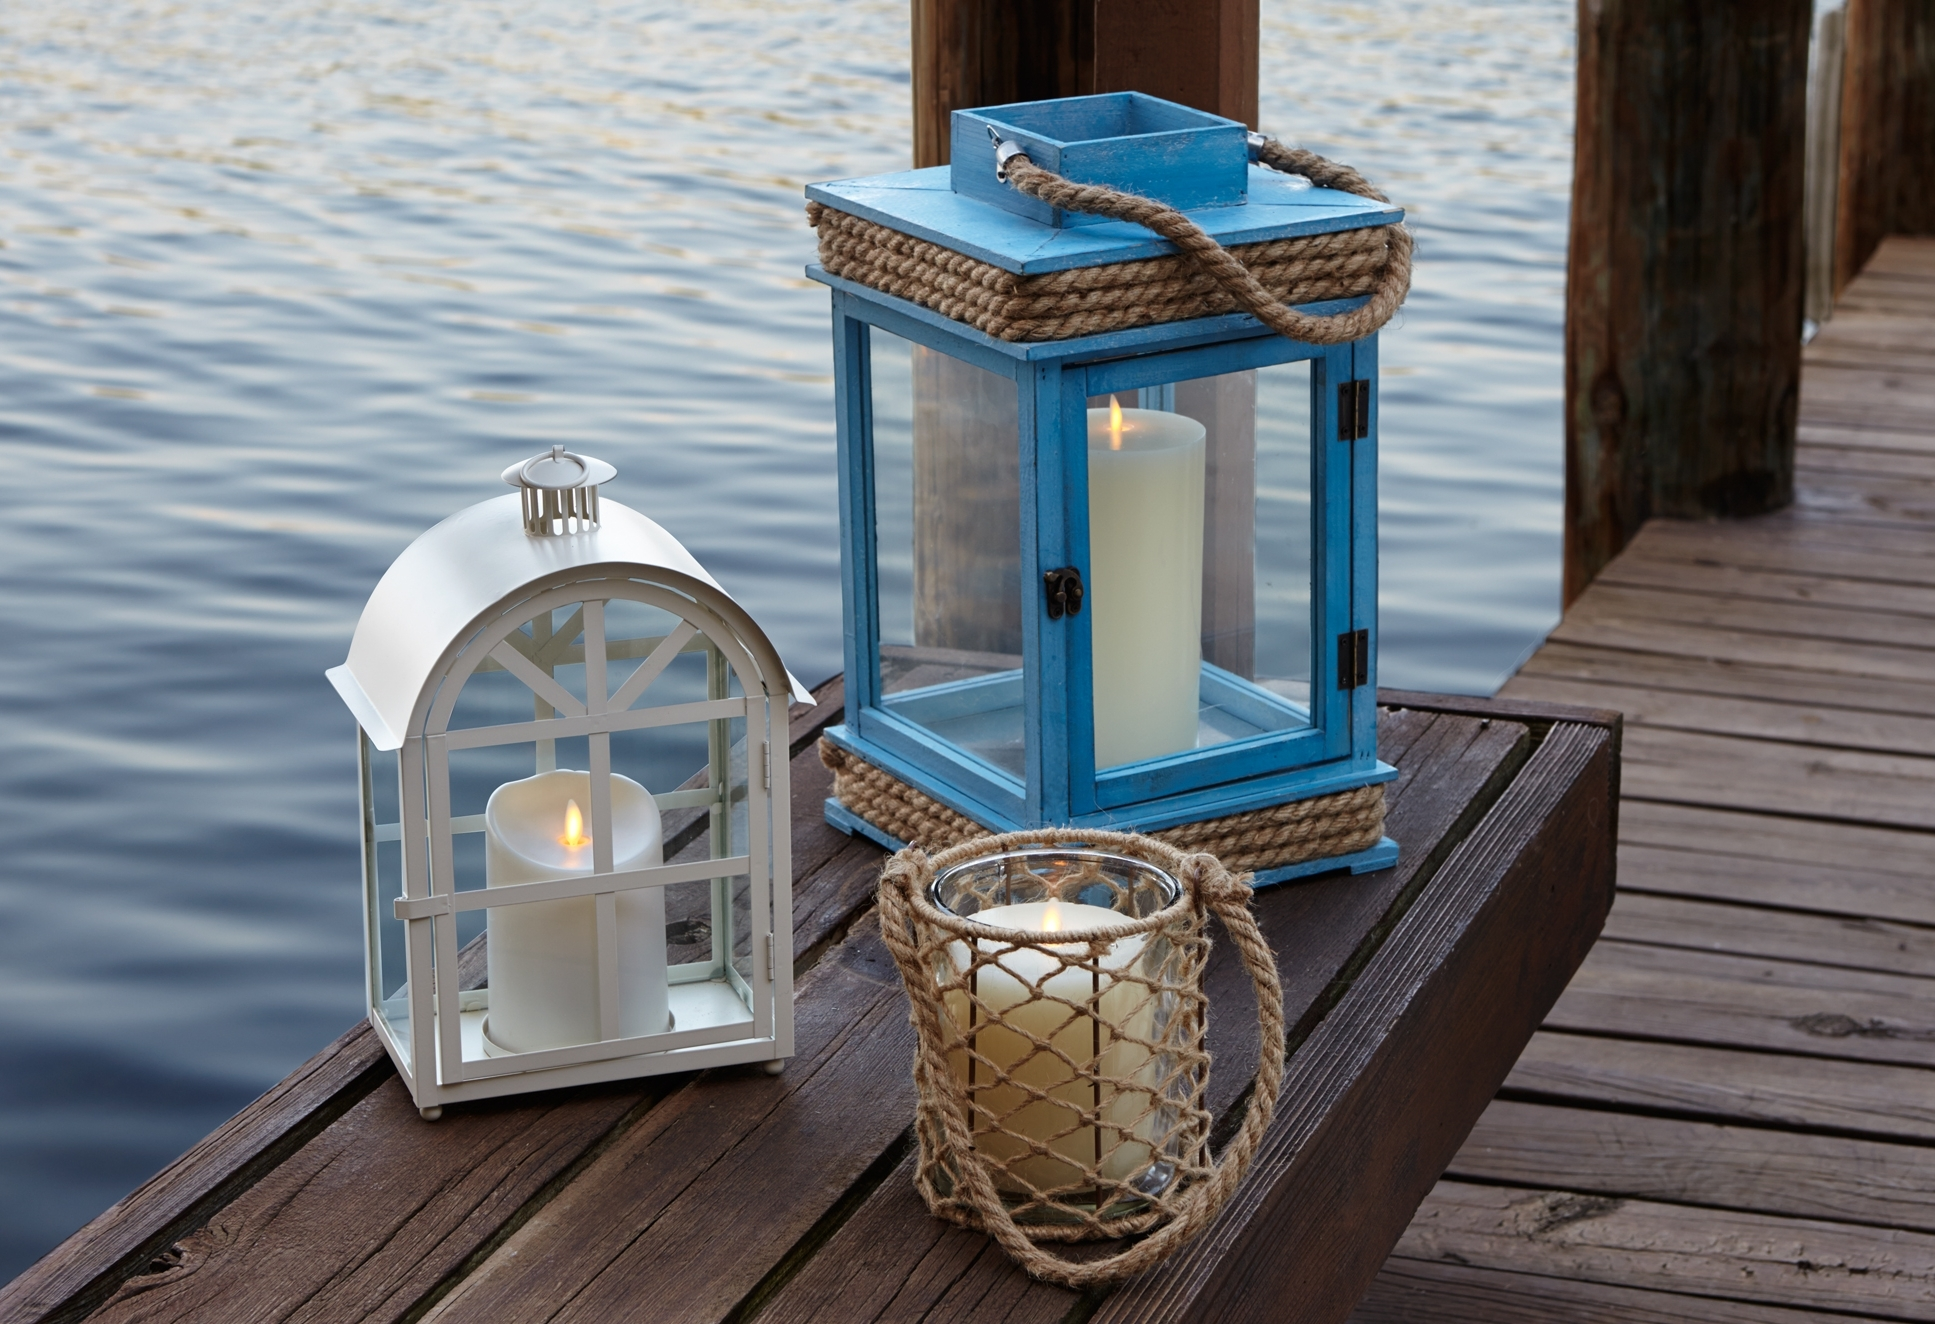 Luminara – Real Flame Effect Candles Throughout Most Up To Date Outdoor Luminara Lanterns (Gallery 14 of 20)